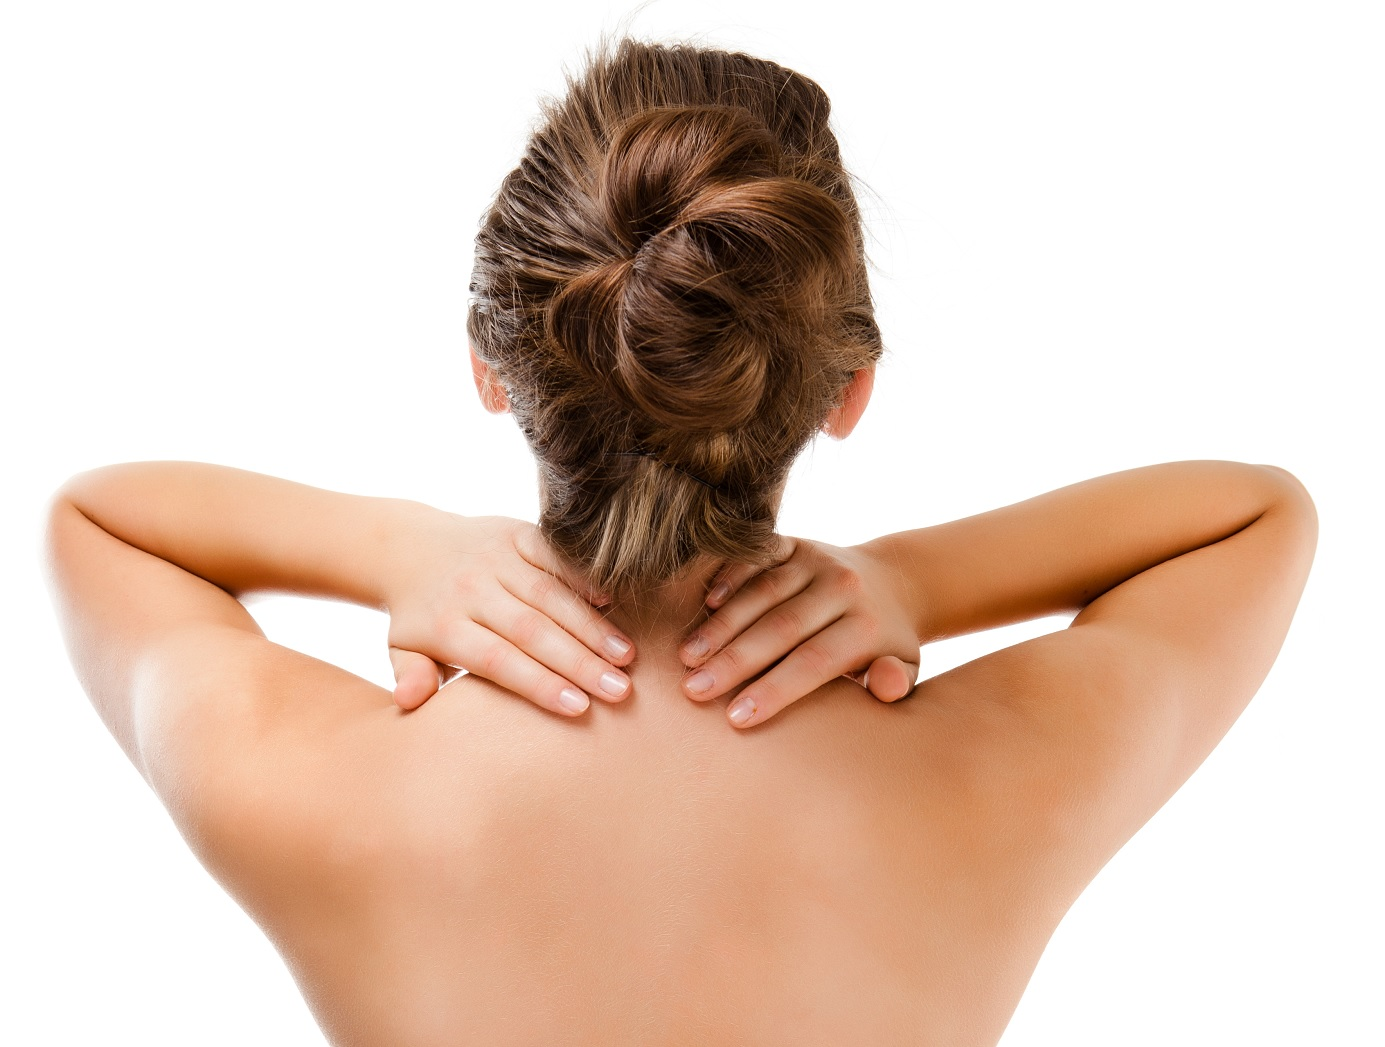 NECK PAIN relief cork acupuncture